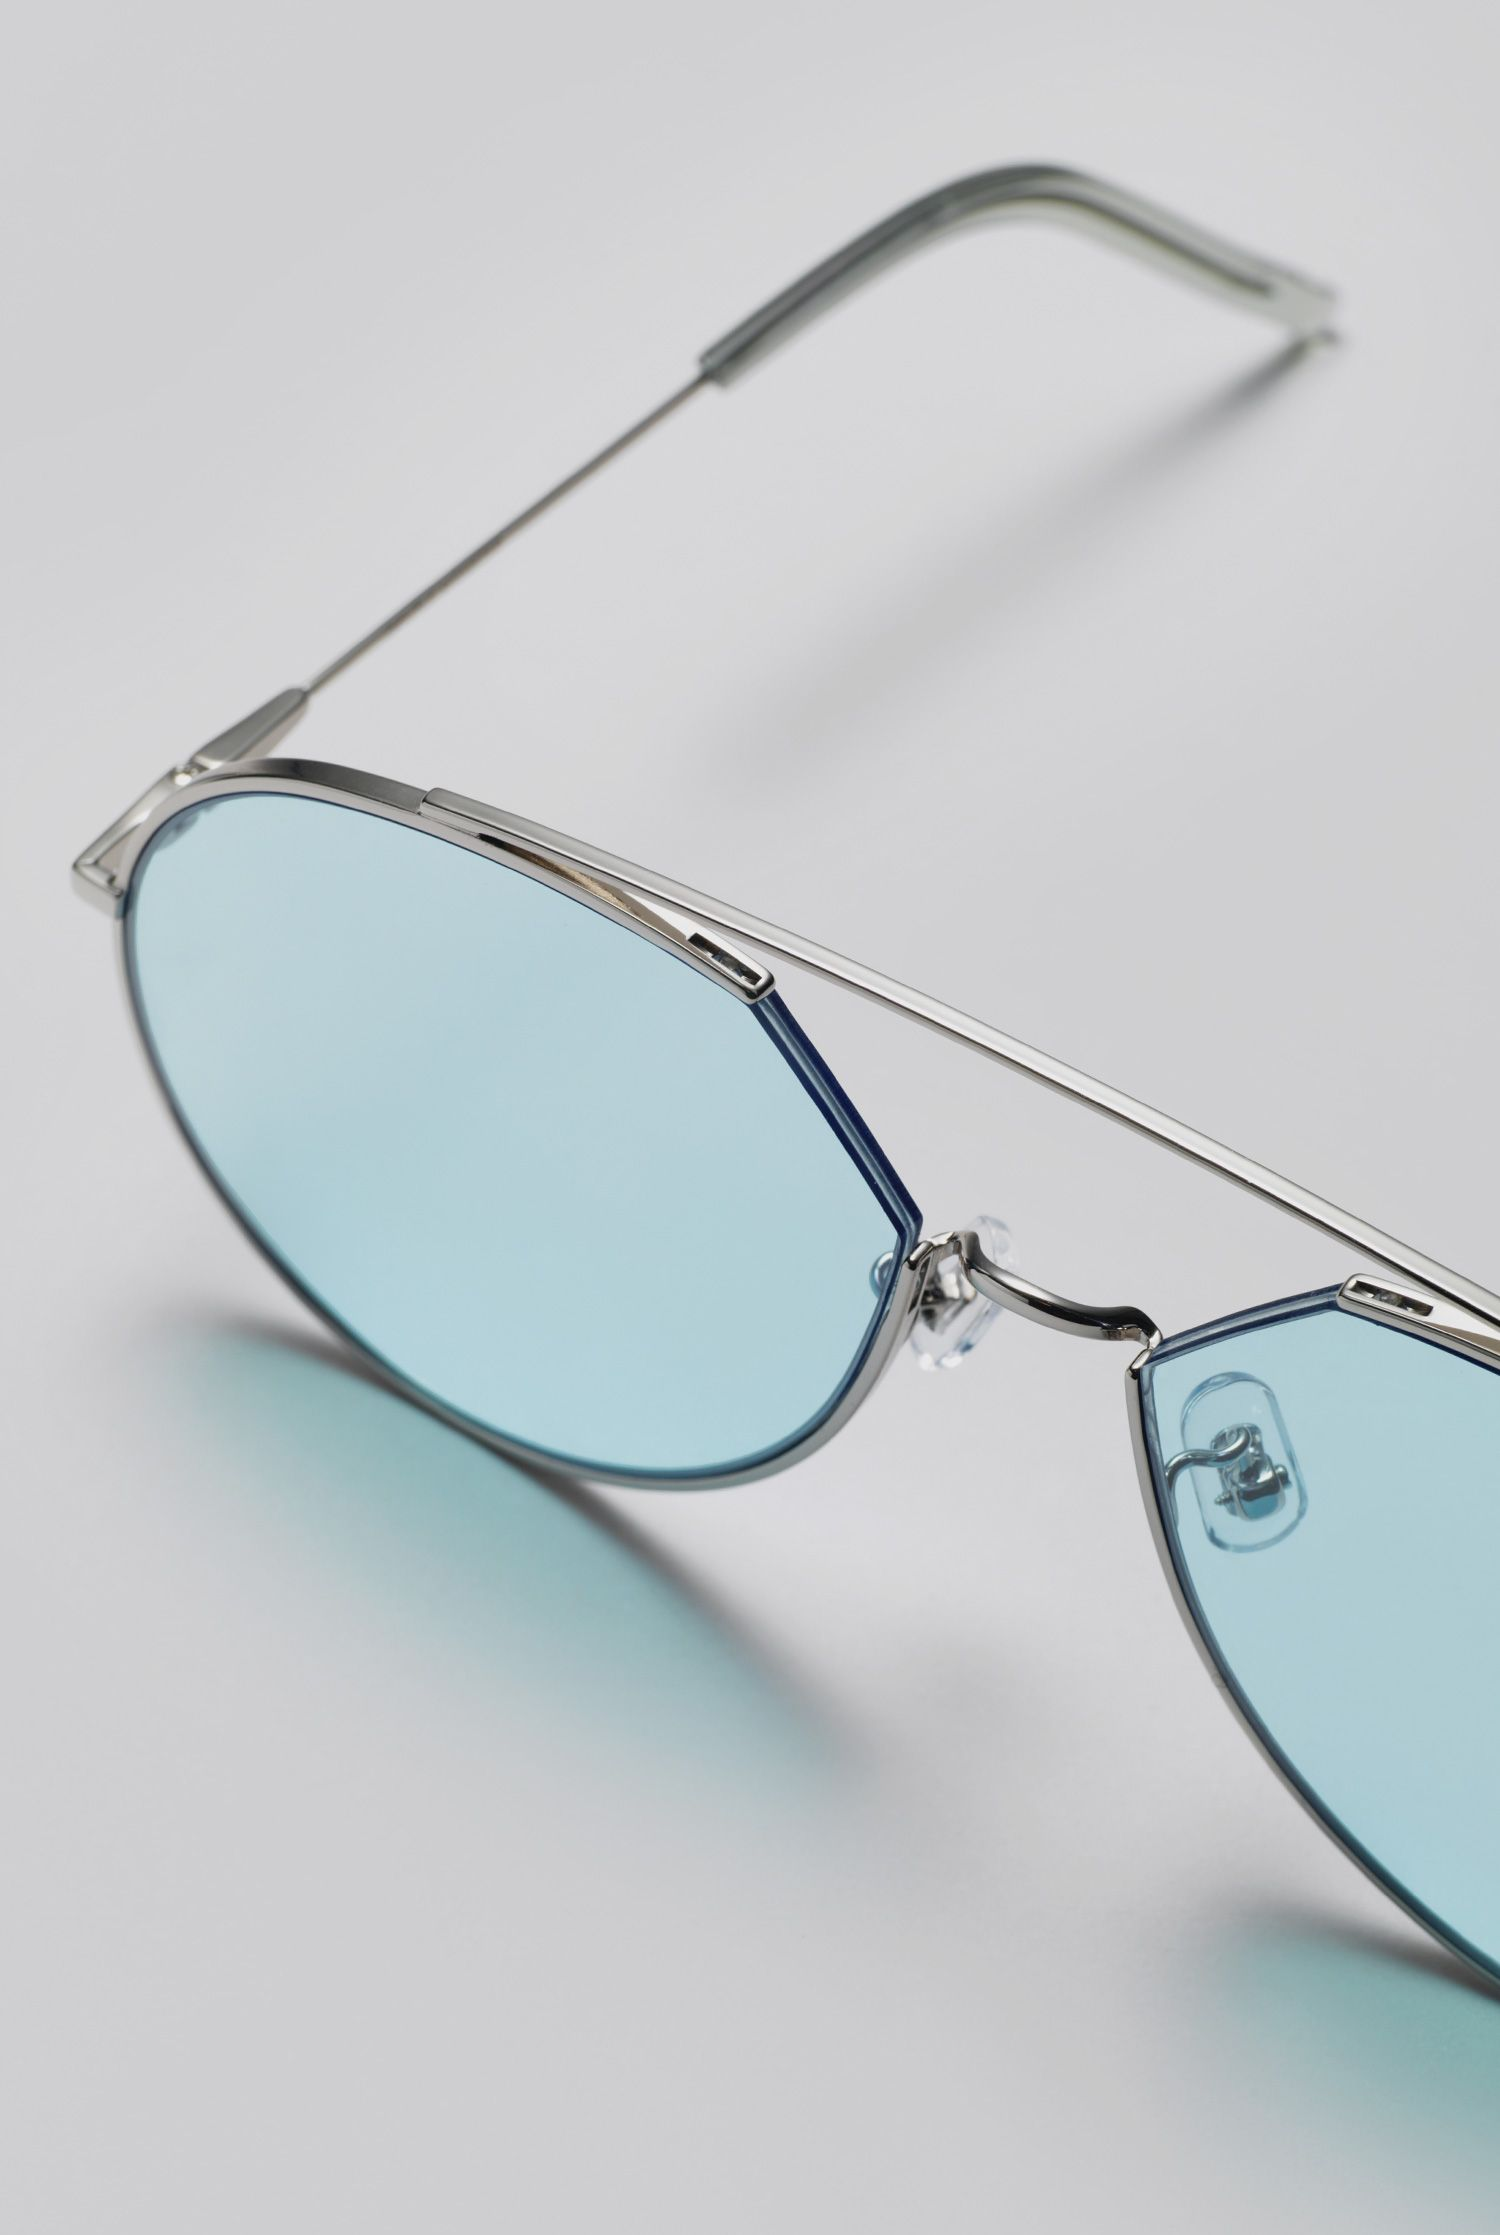 899a19799483 GENTLE MONSTER 2018 Sunglasses Z-1 02(B) Stainless steel front and  Stainless steel temples in silver